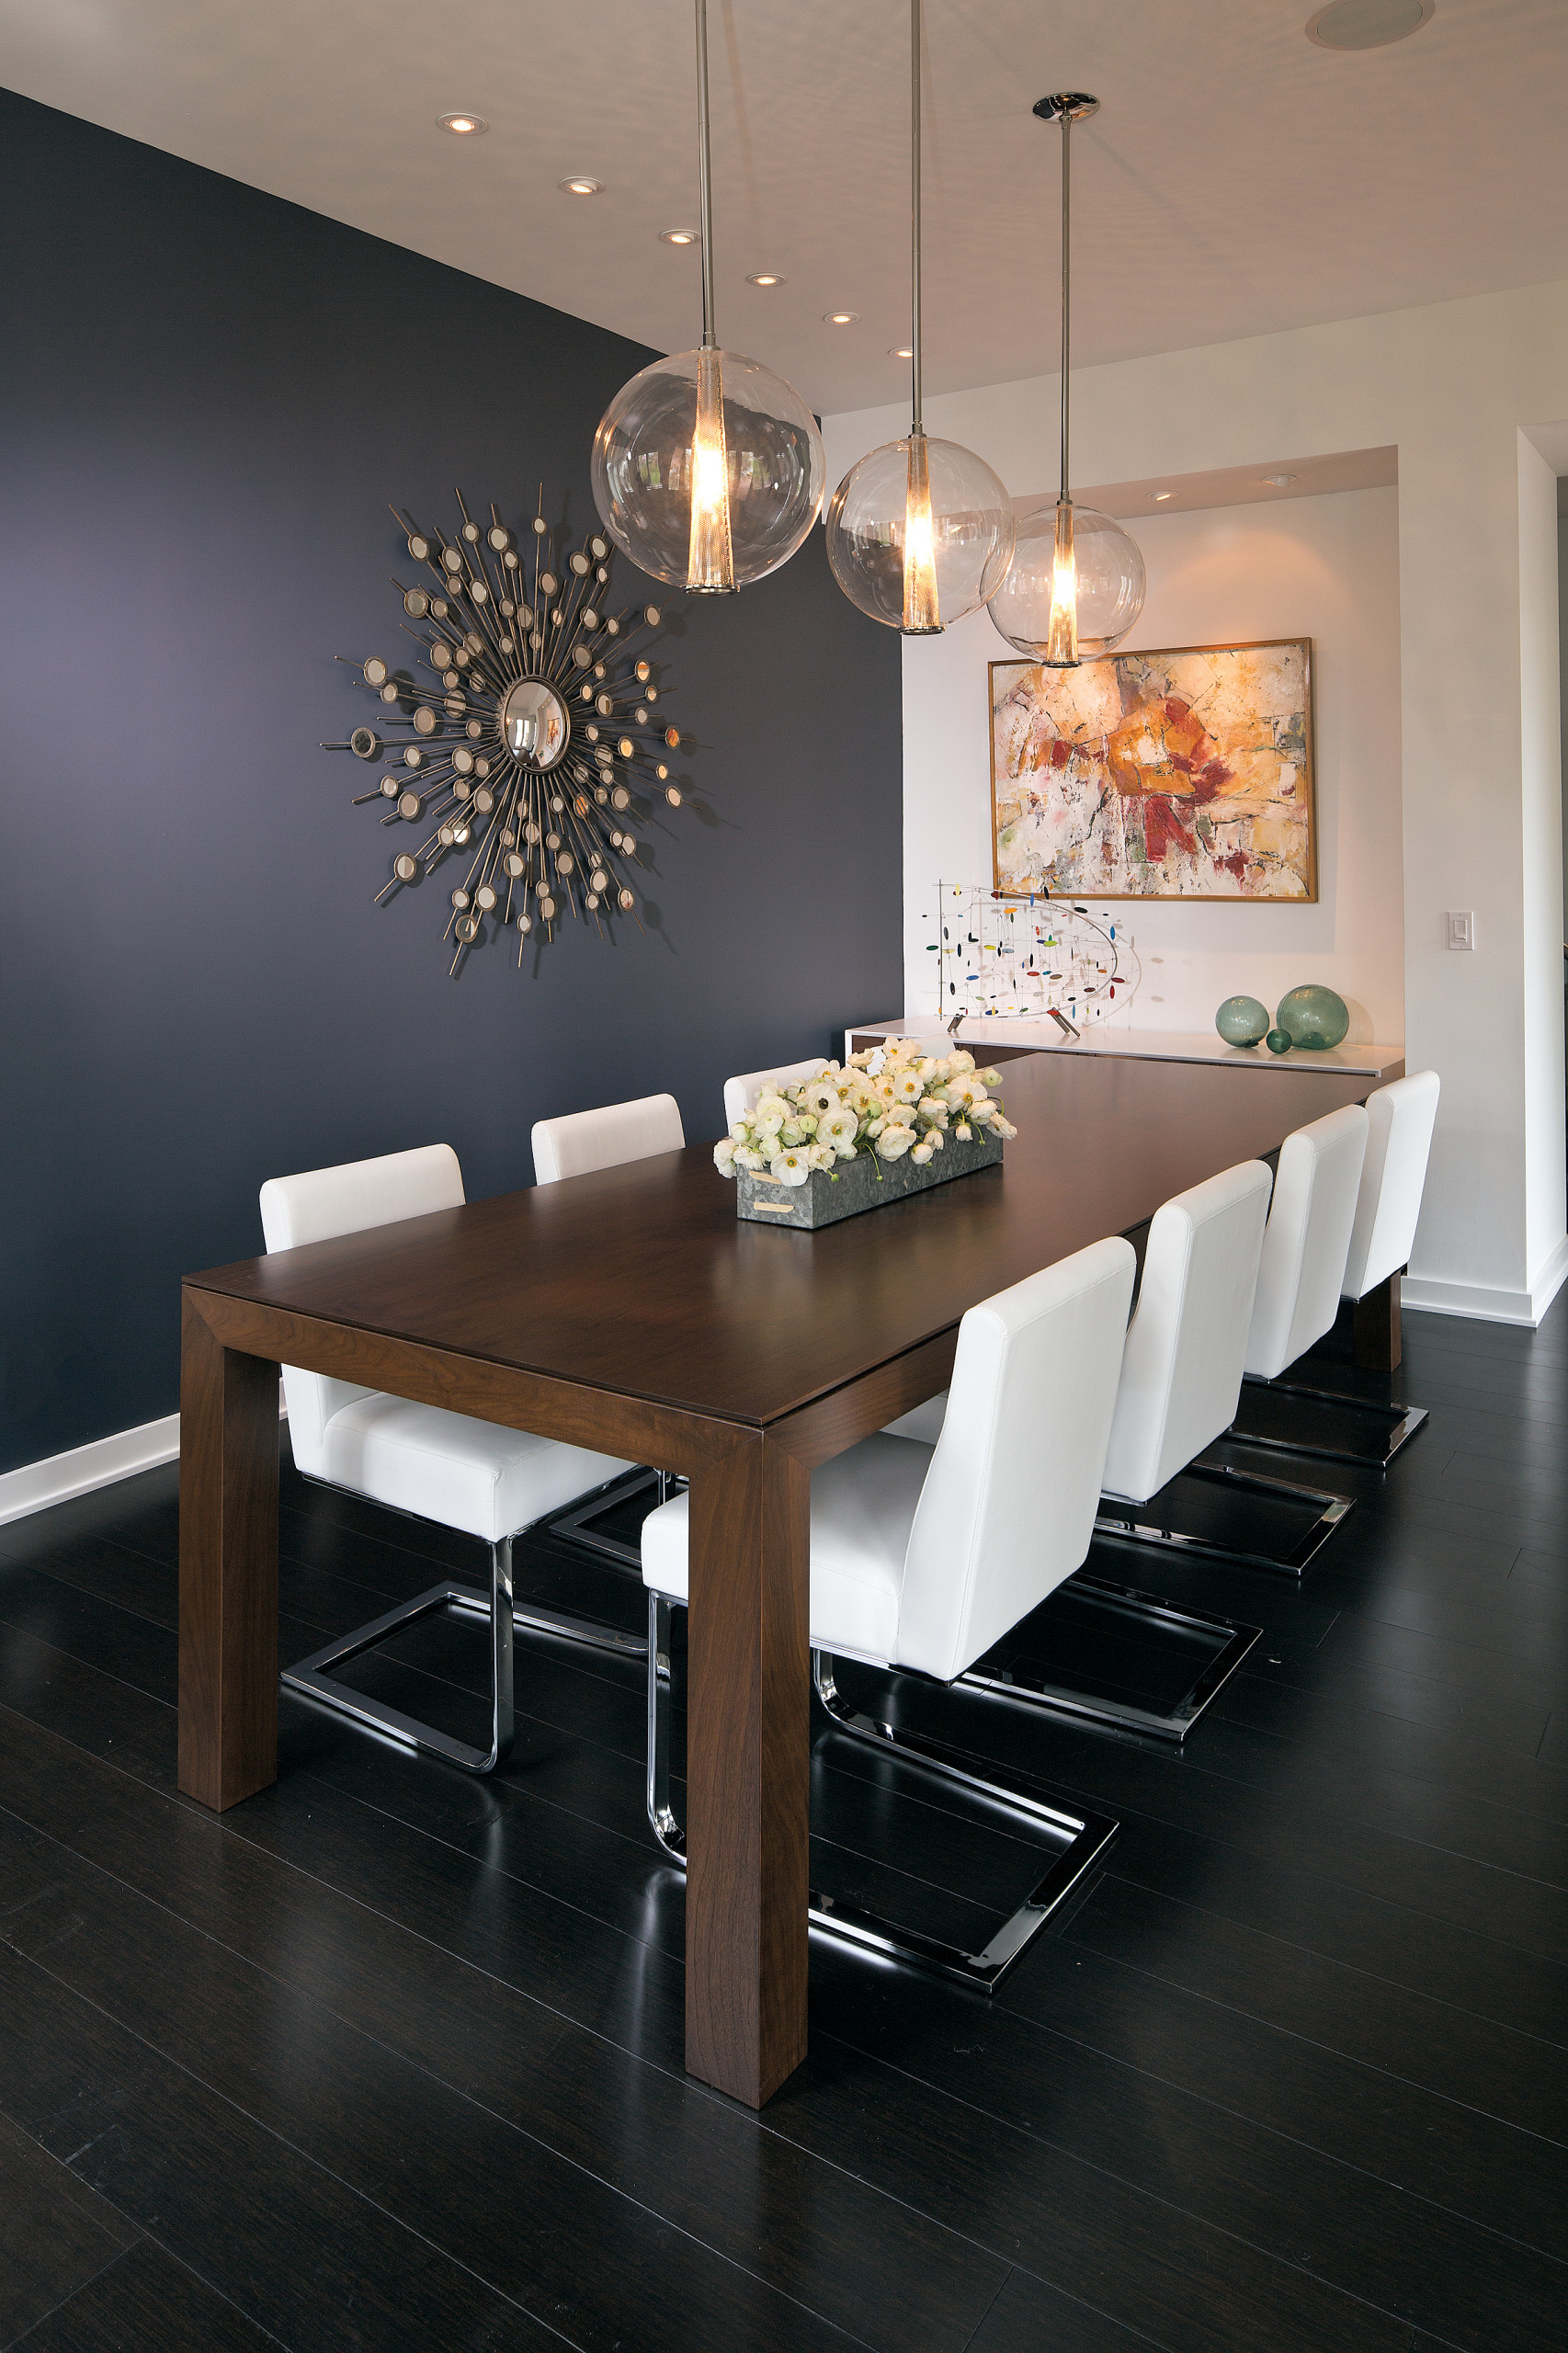 75 Beautiful Dining Room With Blue Walls Pictures Ideas November 2020 Houzz